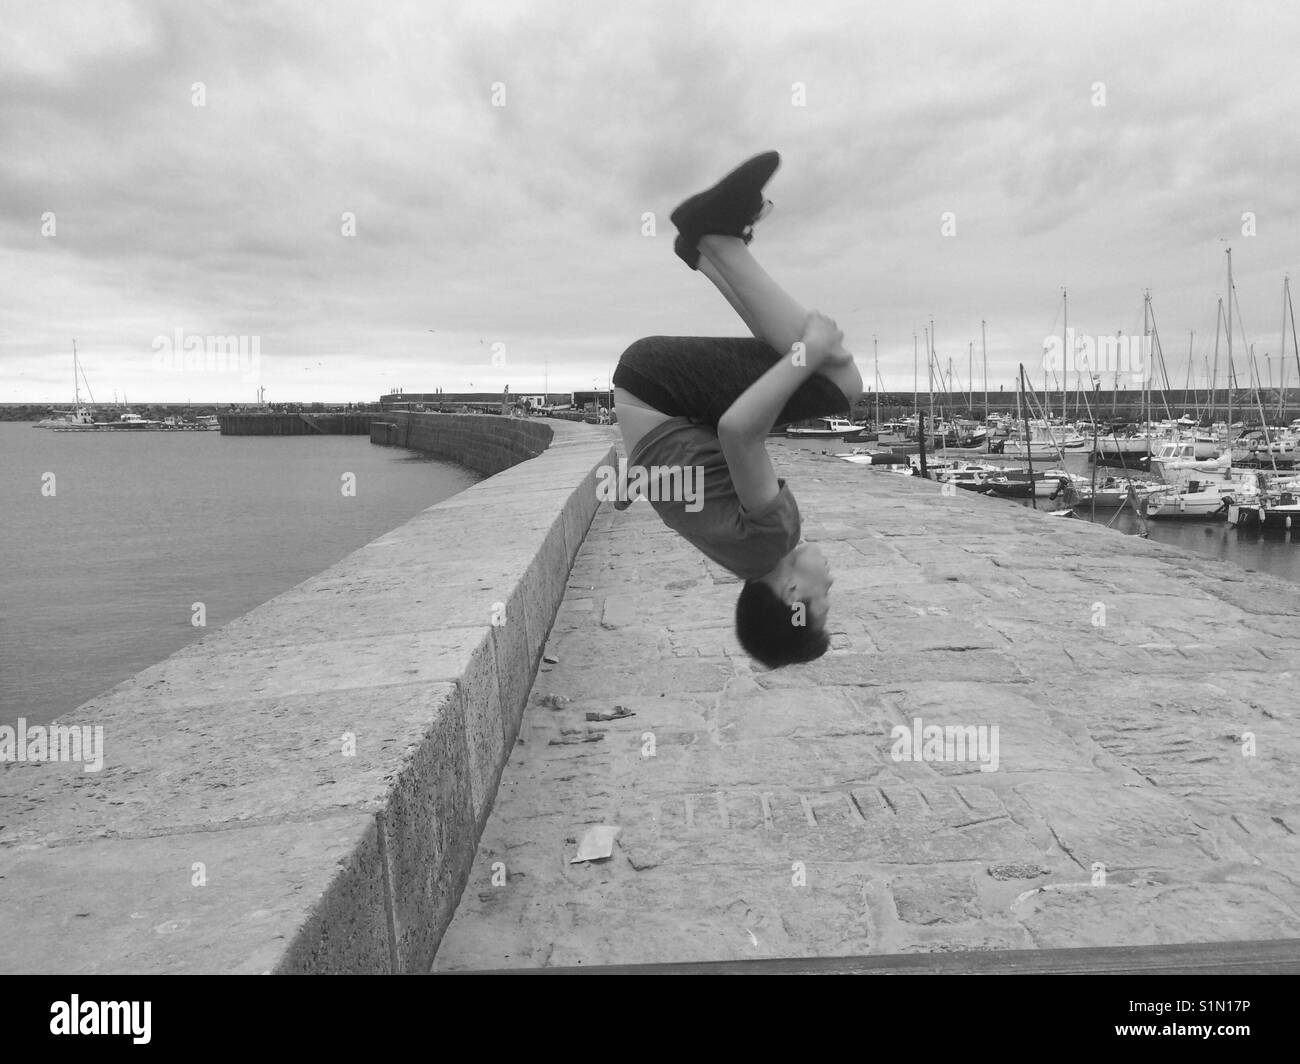 Boy somersaulting in the air - Stock Image